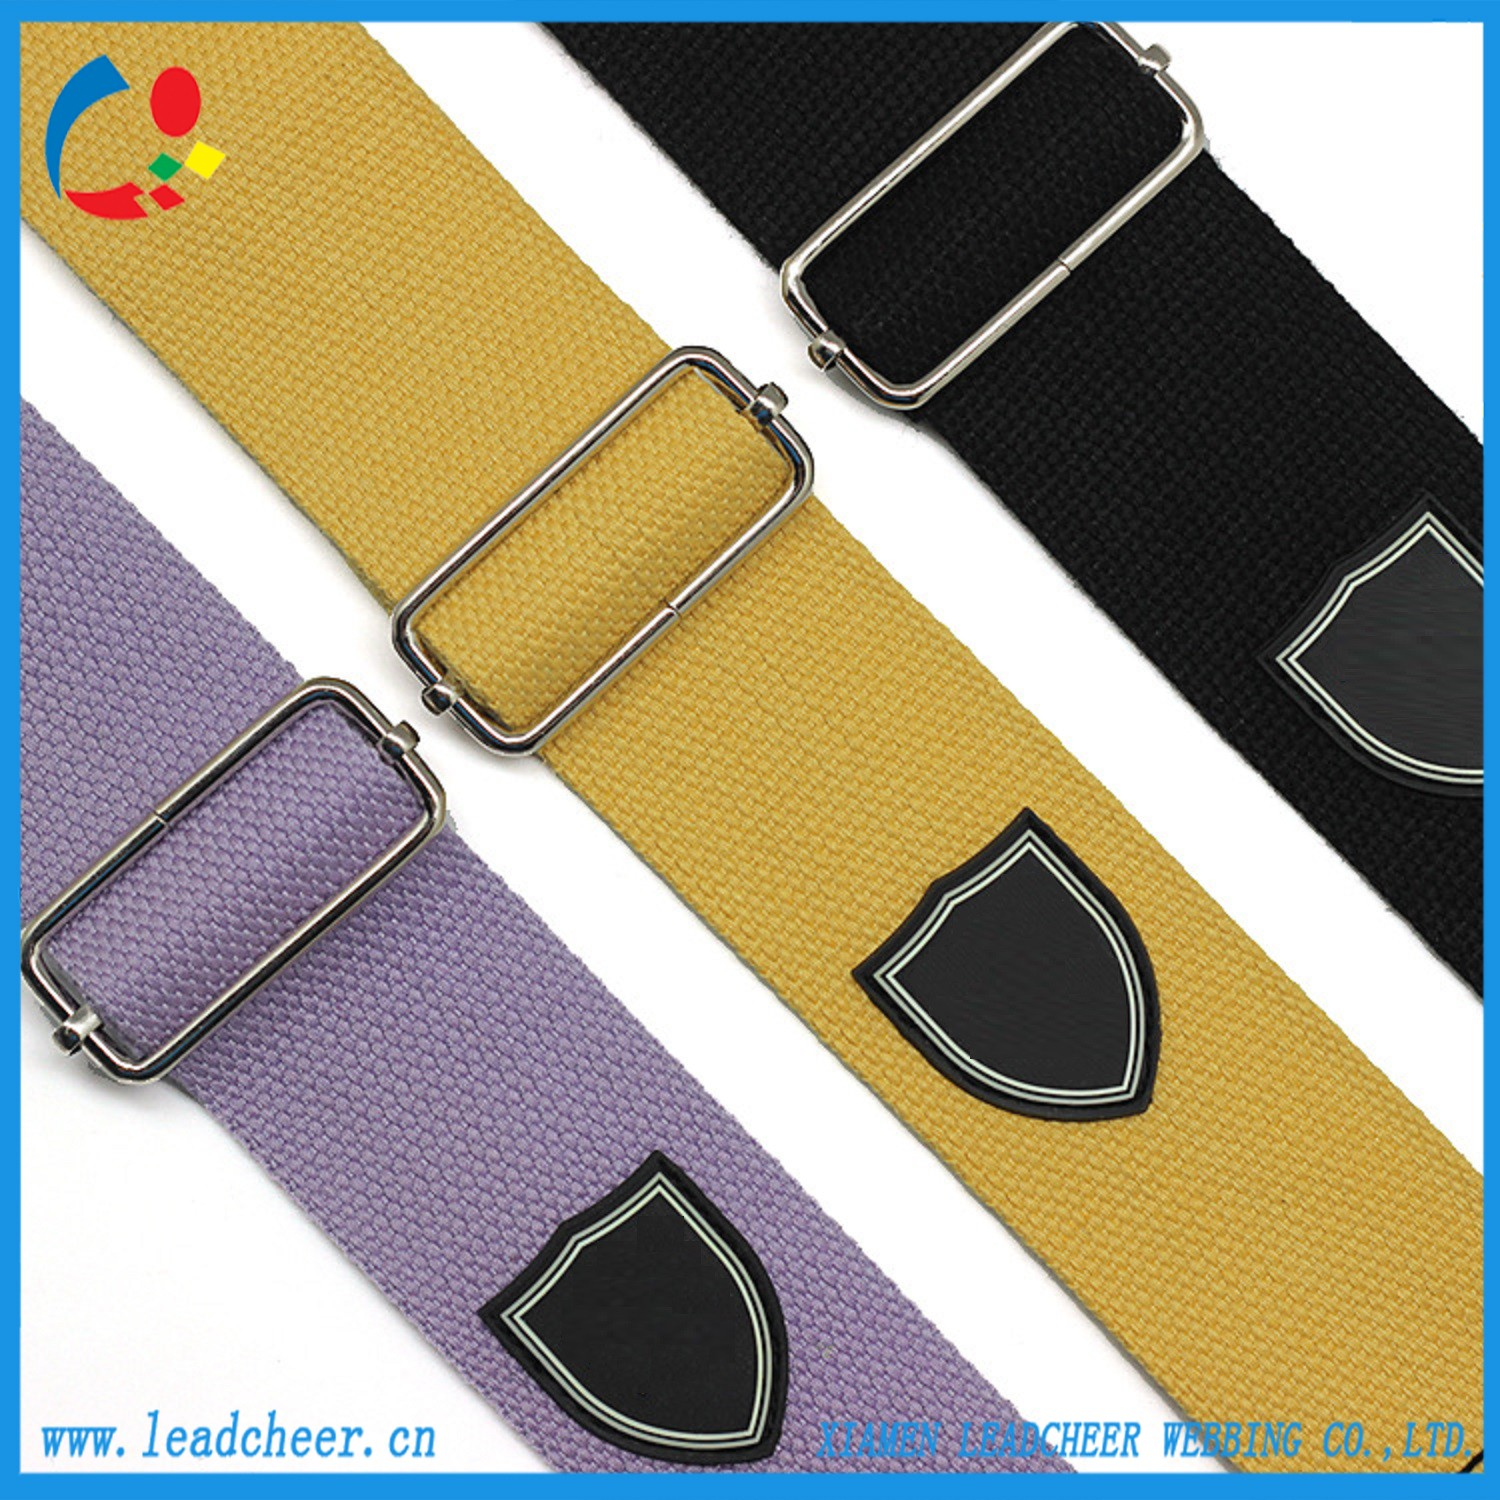 High quality Simple Pure Color Cotton Guitar Strap Ukulele Sling with Leather Ends Quotes,China Simple Pure Color Cotton Guitar Strap Ukulele Sling with Leather Ends Factory,Simple Pure Color Cotton Guitar Strap Ukulele Sling with Leather Ends Purchasing